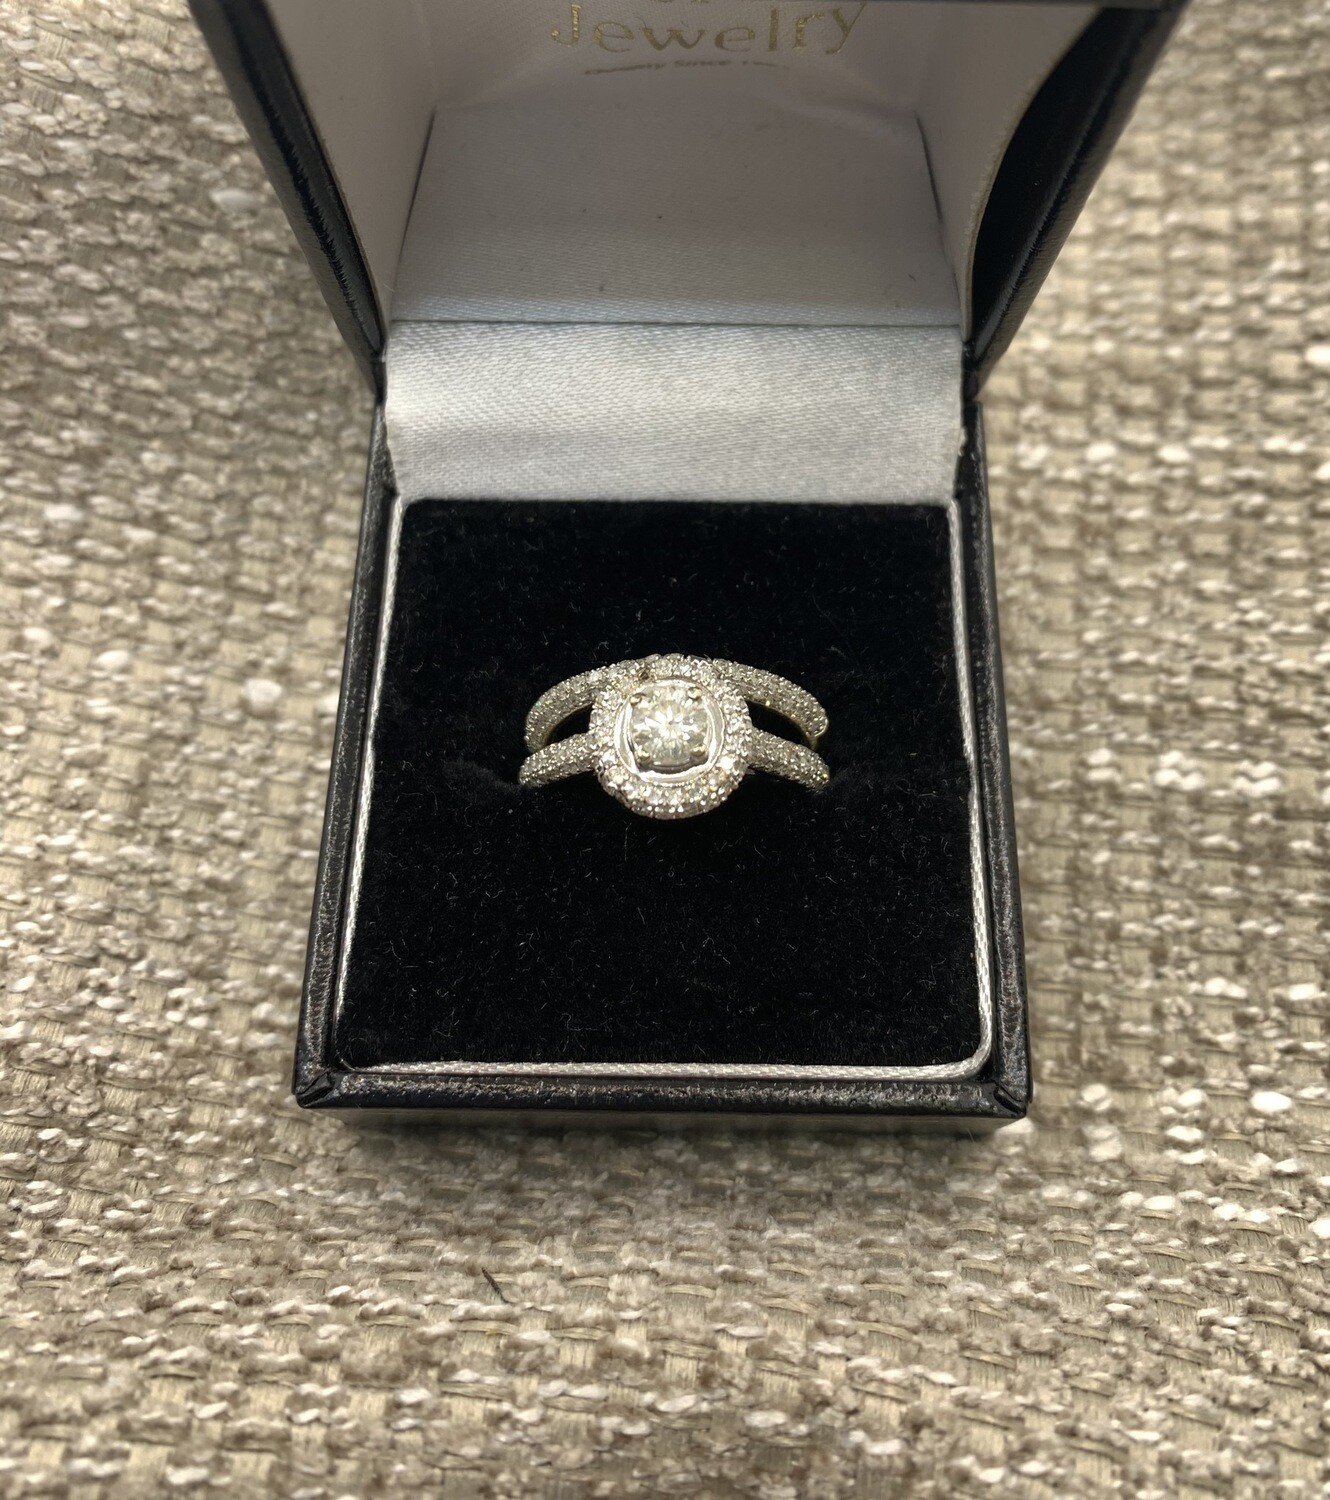 Brilliant Cut Engagement And Wedding Band Set 1.25 ct Total Weight set in 14K White Gold